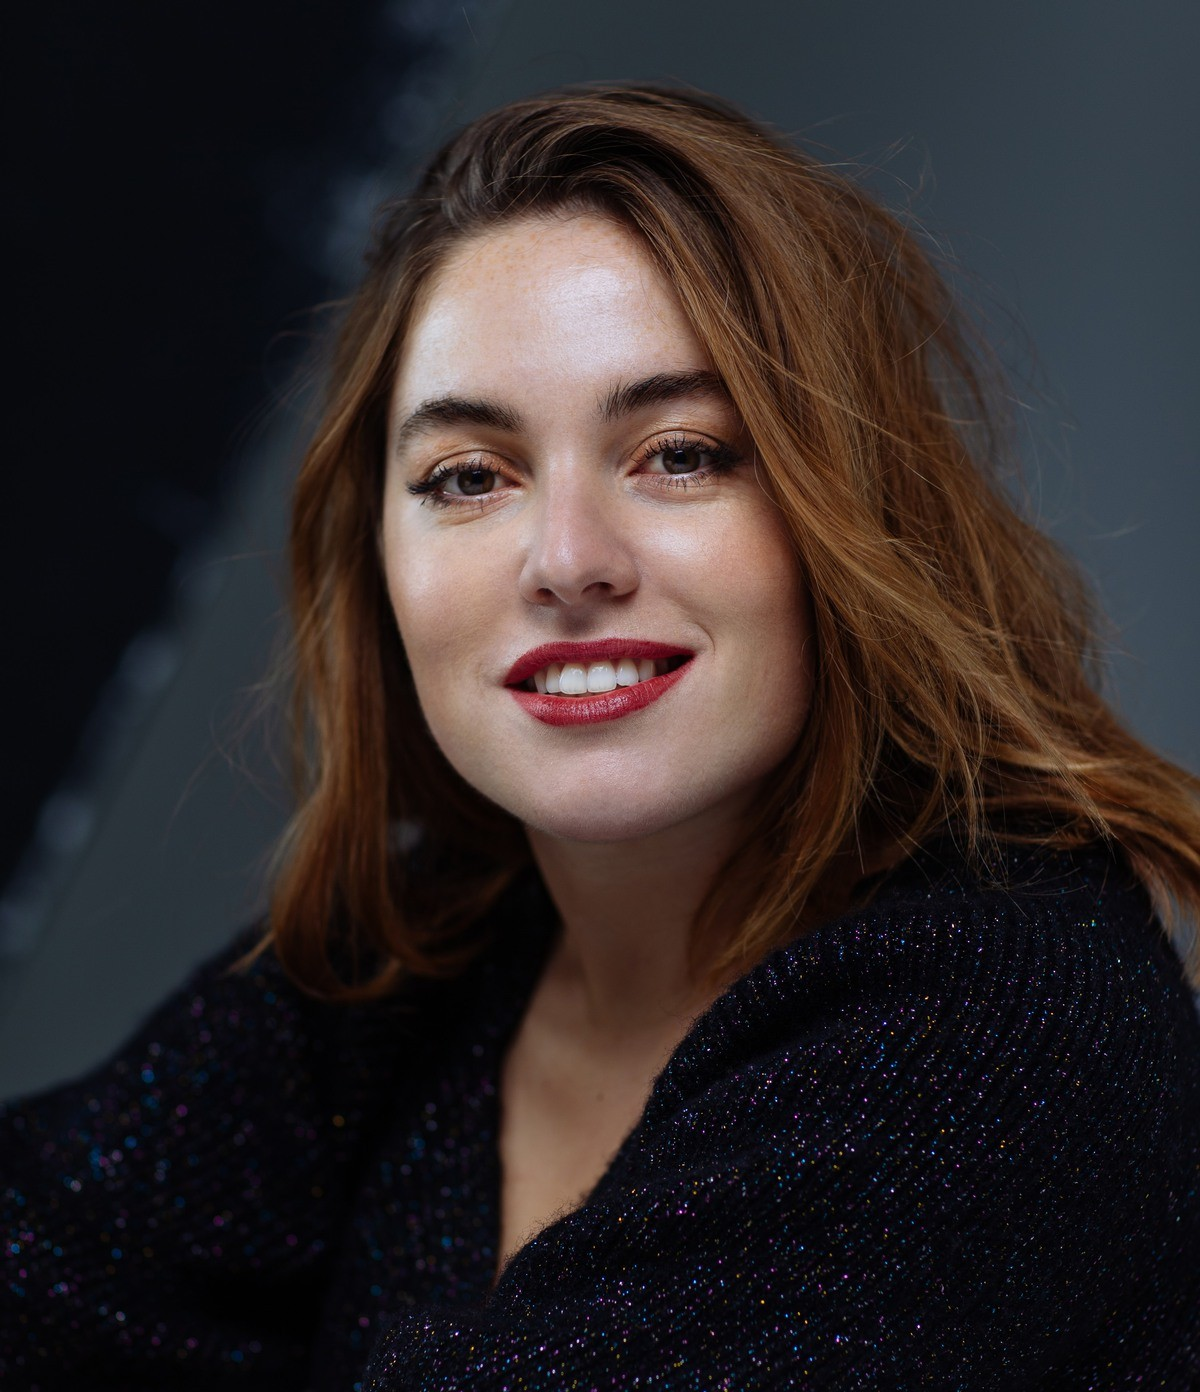 Victoria Lacoste is the founder of Edelweiss Productions. Get to know the producer and her stellar resume of short films.